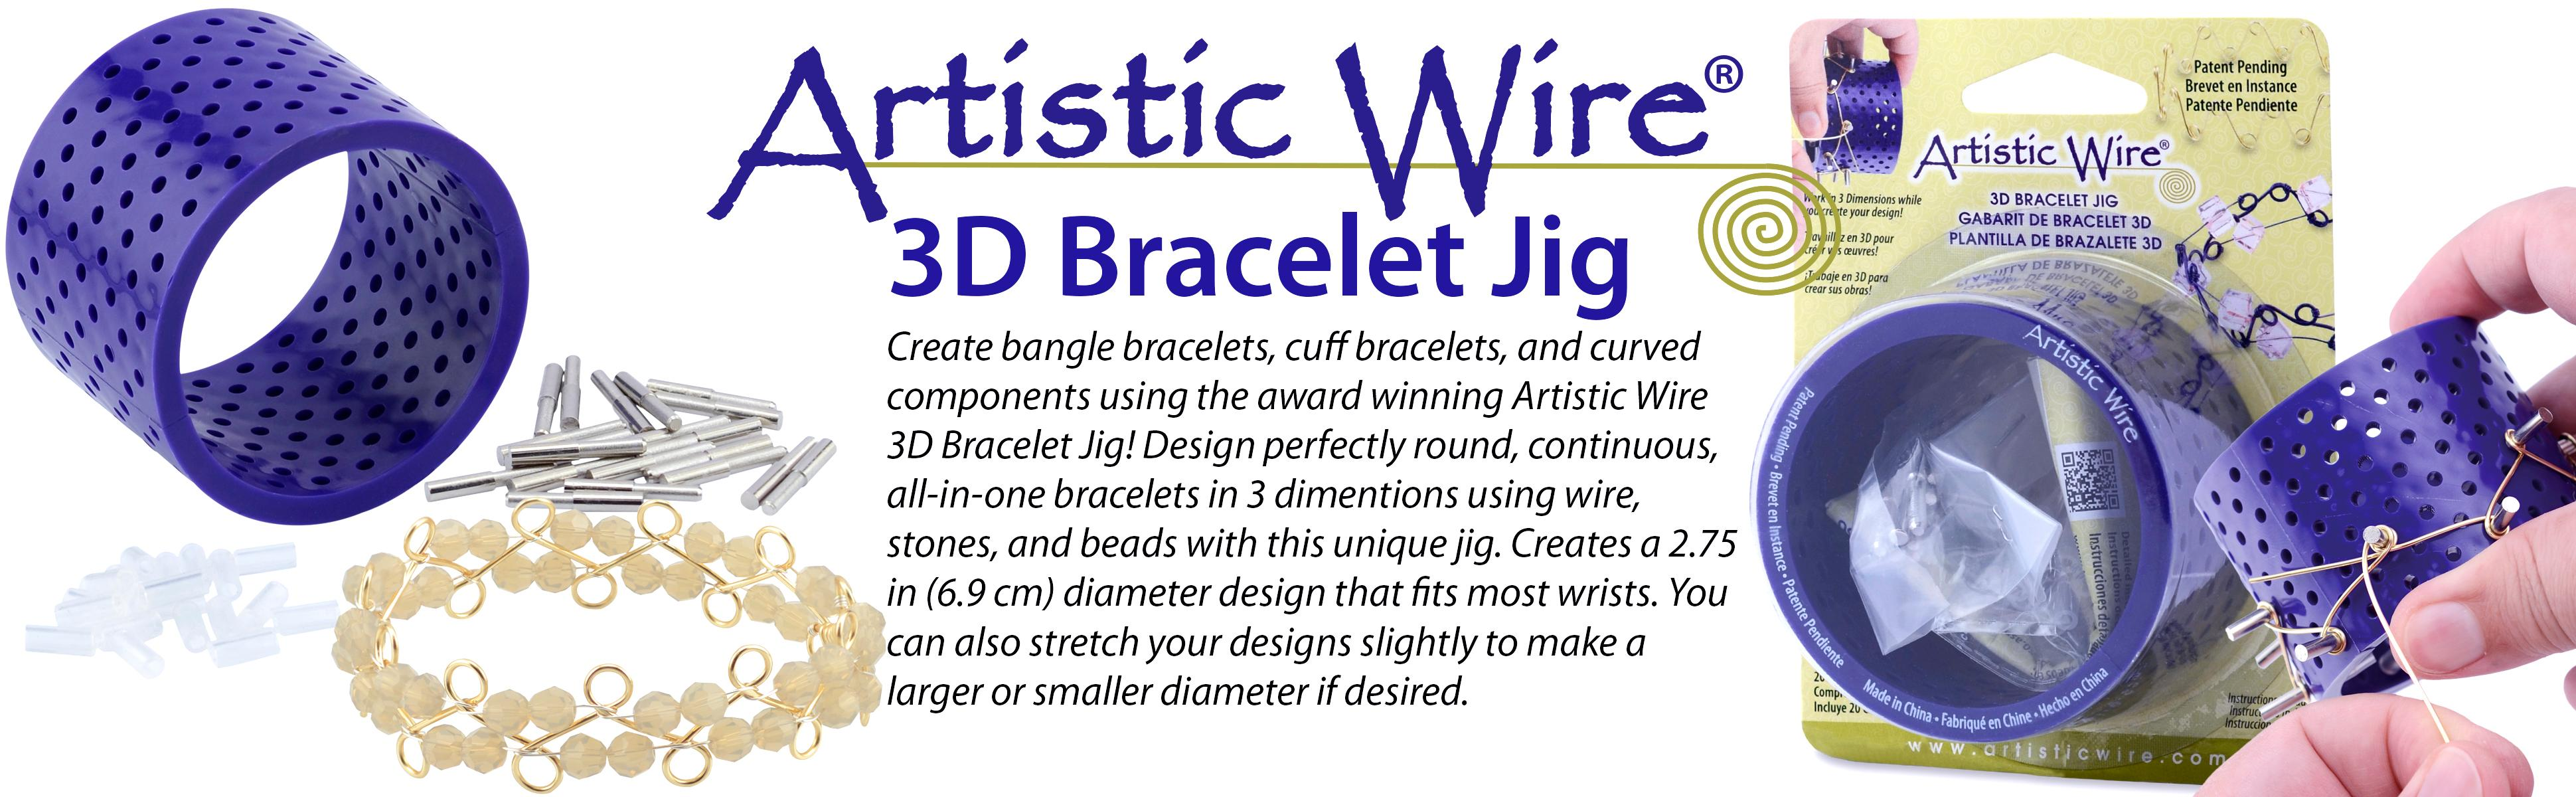 Amazon.com: Artistic Wire 3D Bracelet Jig with 20 Pegs, and Holder ...